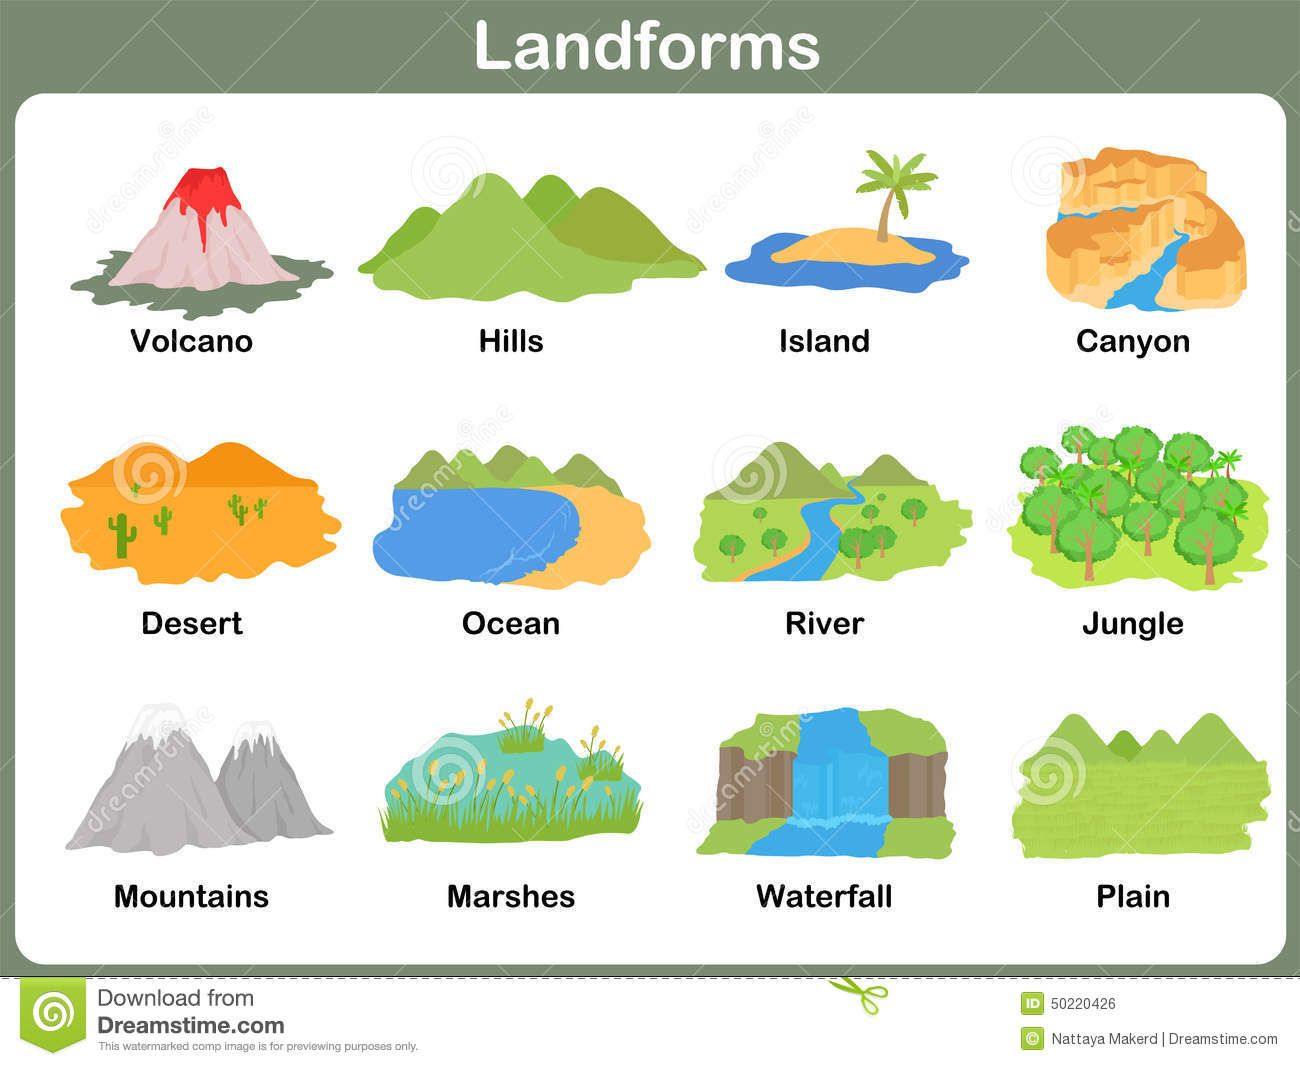 Worksheets Landform Worksheets paper art landforms for kids integrated lesson plans leaning worksheet royalty free stock vector art